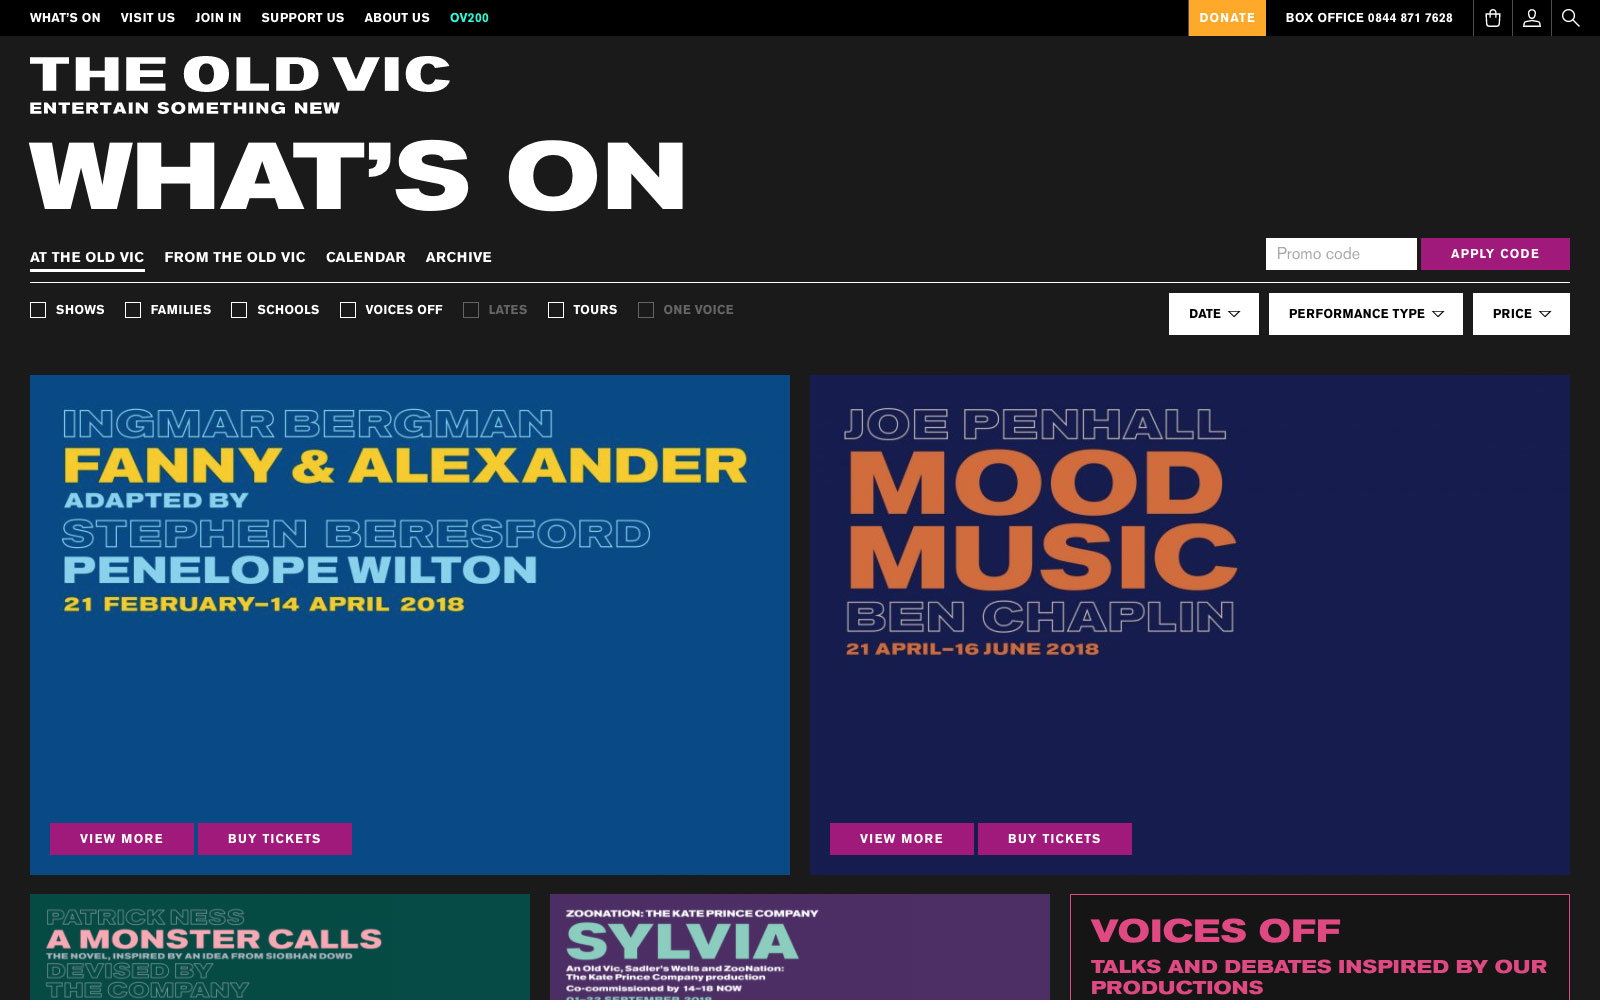 The Old Vic website What's On page